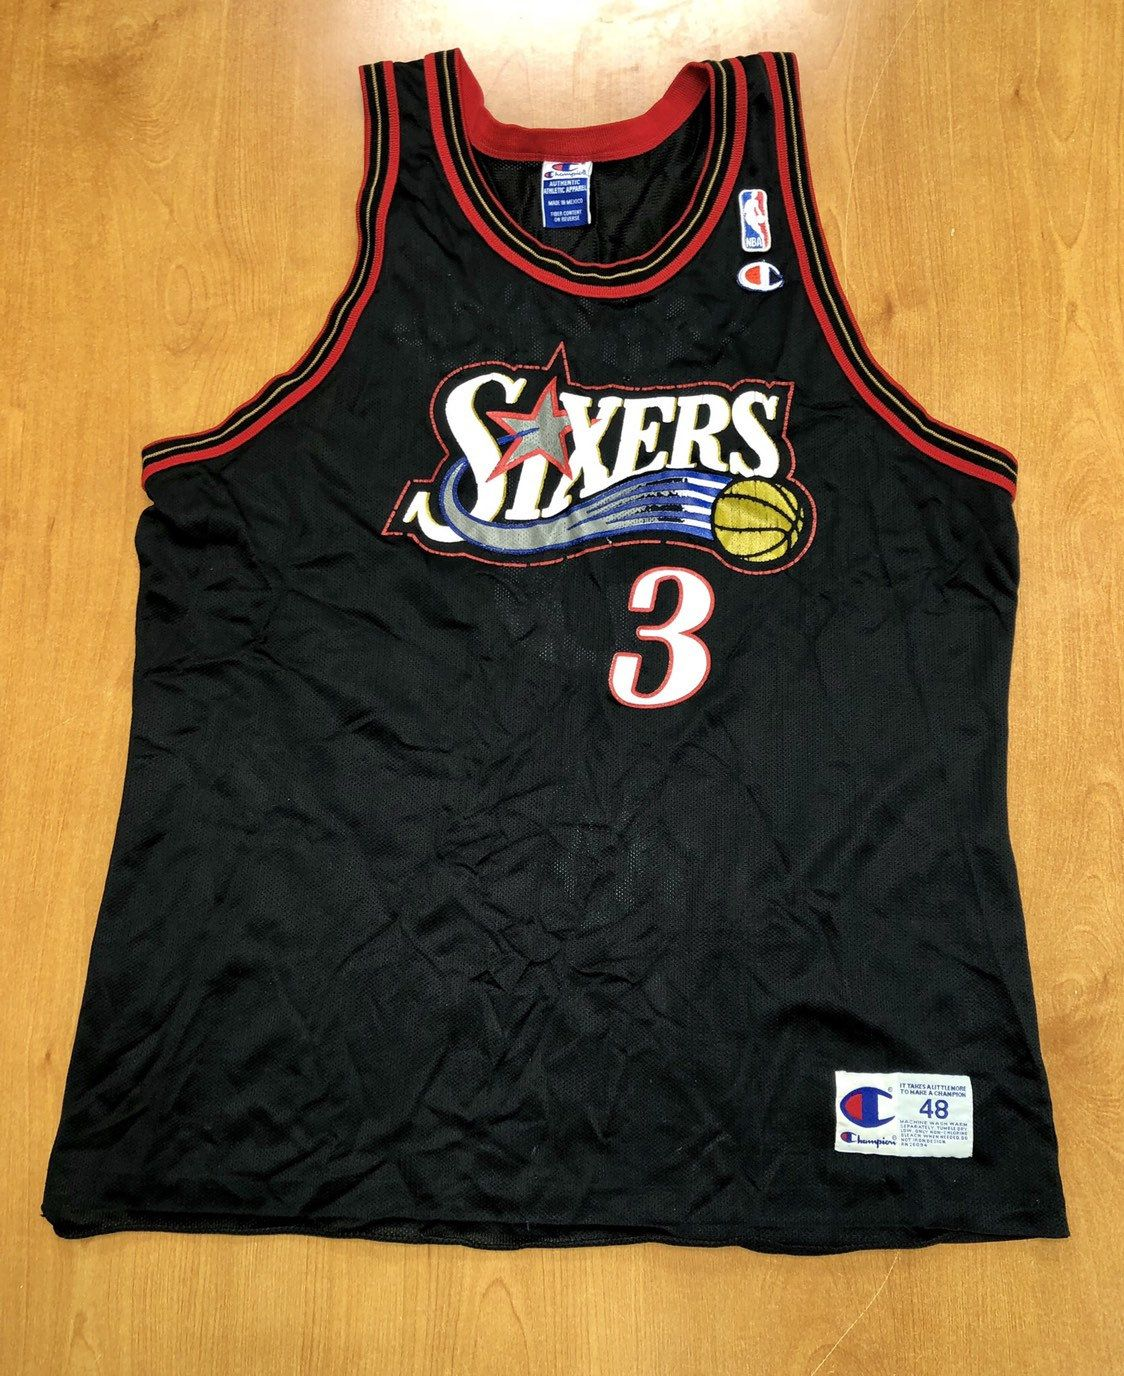 129898a8ac1 Vintage 1997 - 1998 Allen Iverson Philadelphia 76ers Champion Jersey Size  48 charles barkley dikembe mutombo hat shirt nba finals georgetown by ...